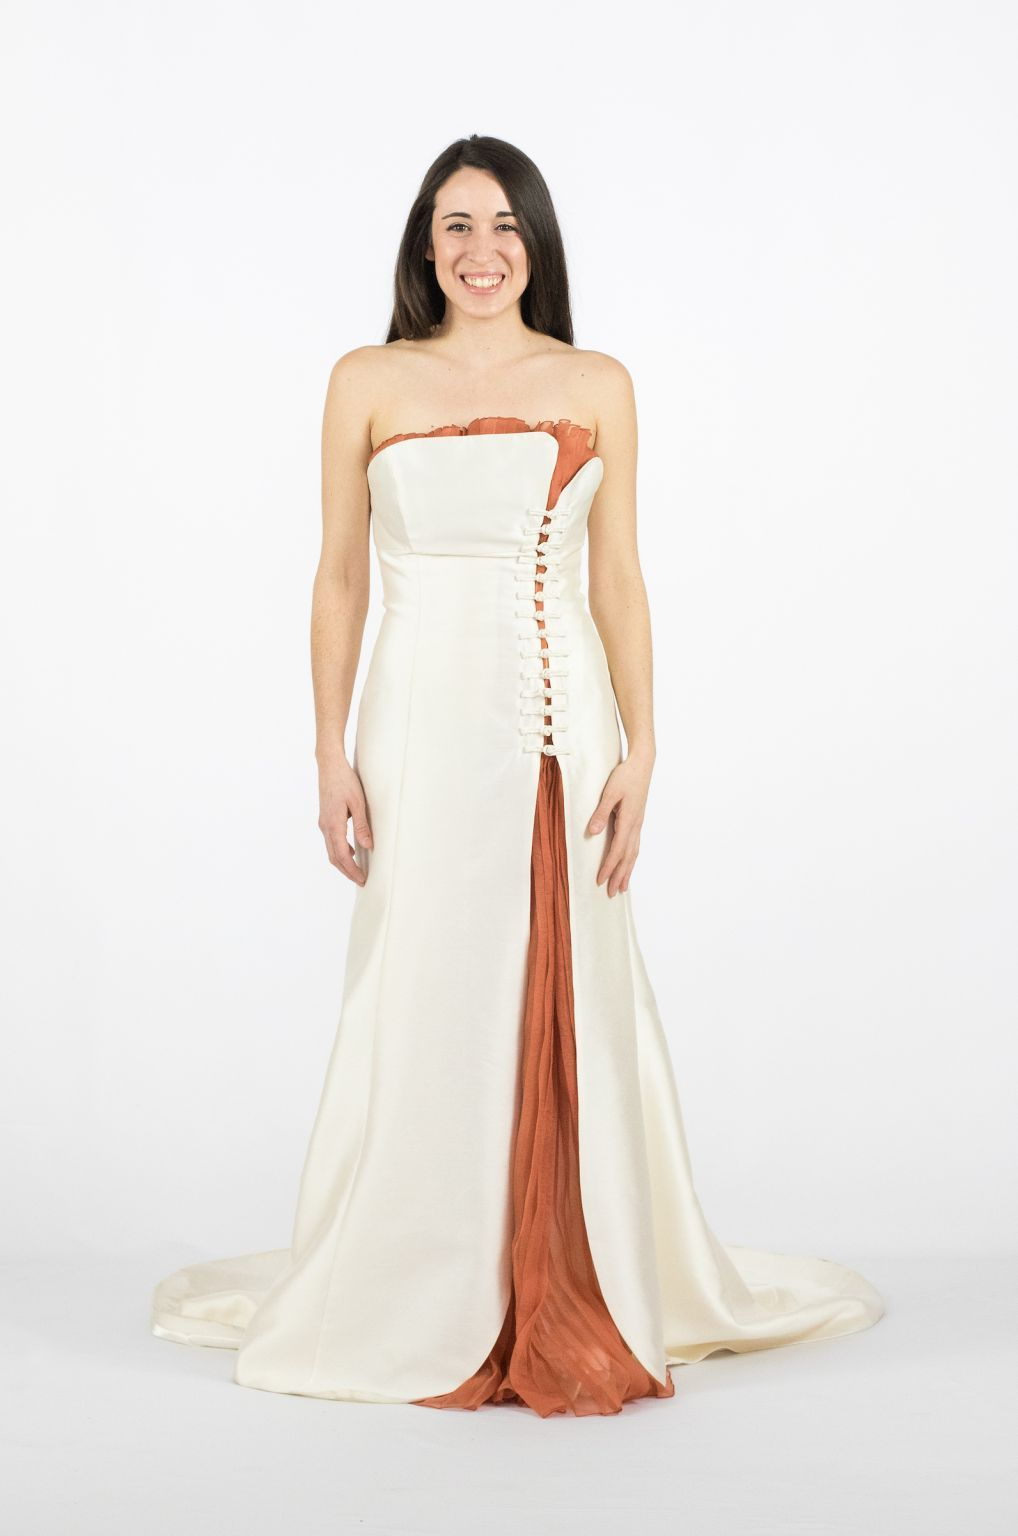 Used wedding dresses near me  Other Luly Yang  Size   Used Wedding Dresses  wedding vows